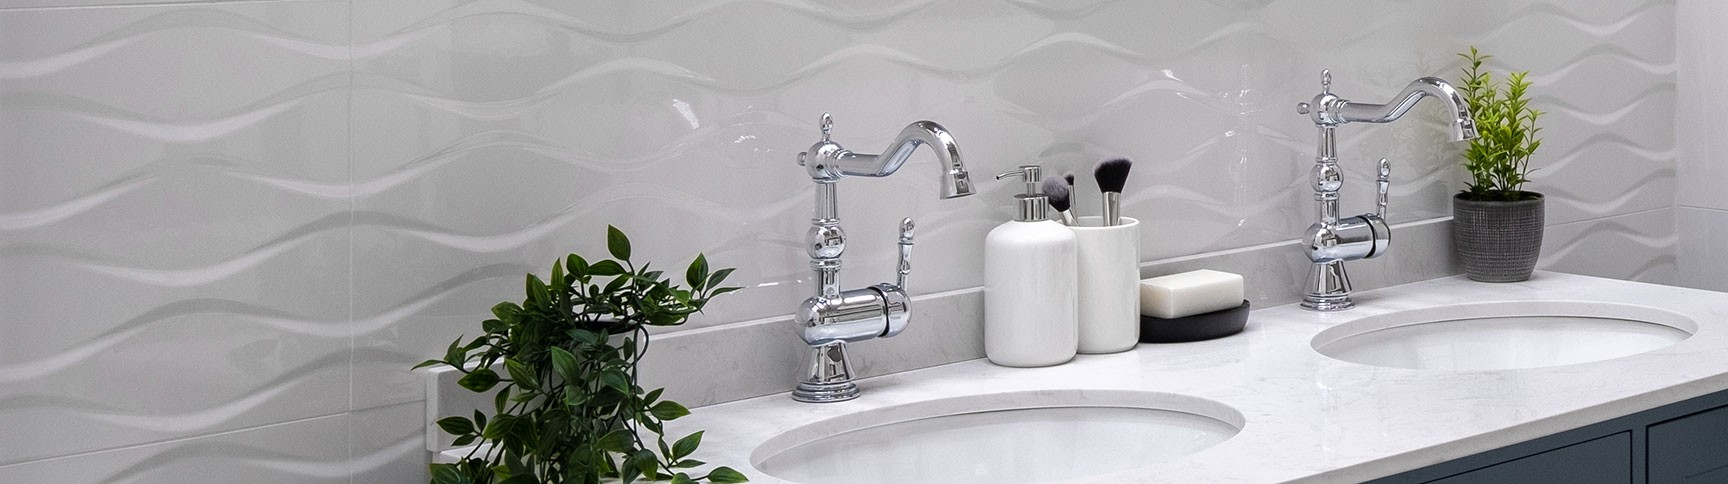 Bathroom Taps and Accessories   World of Tiles, Bathrooms & Wood Flooring